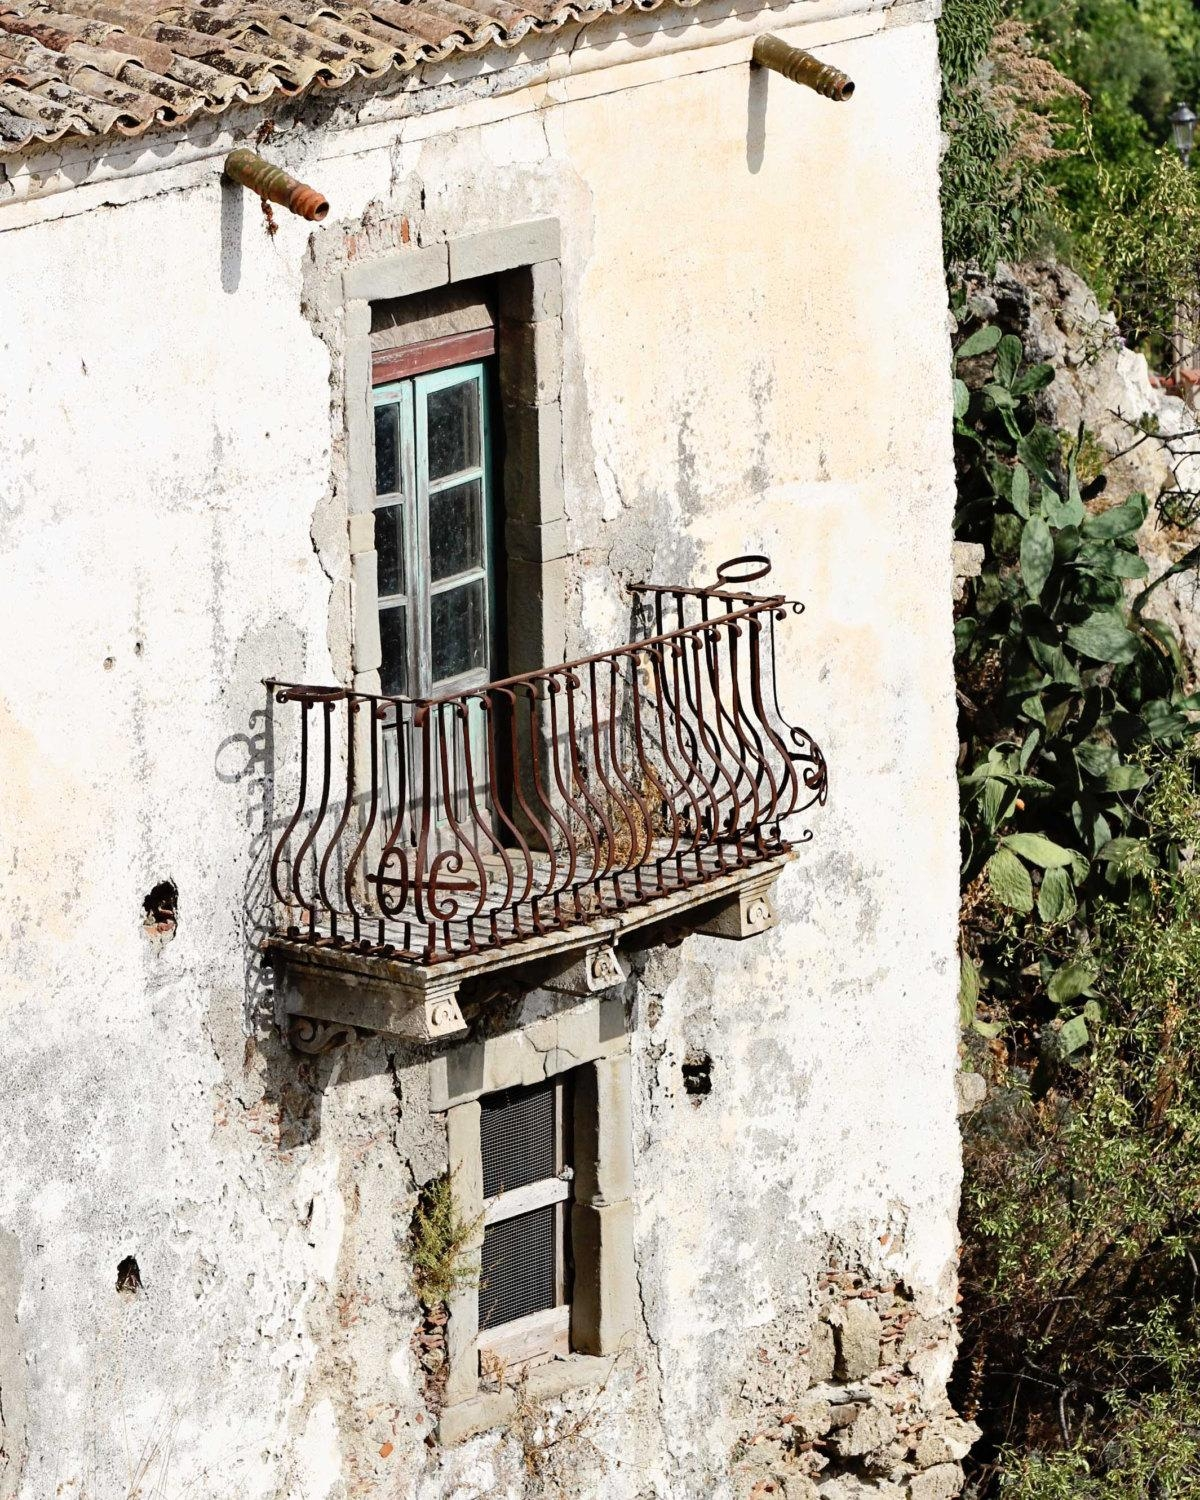 Sicily Italy Photography – Balcony Print – Rustic Italian Decor Inside Rustic Italian Wall Art (Image 12 of 20)